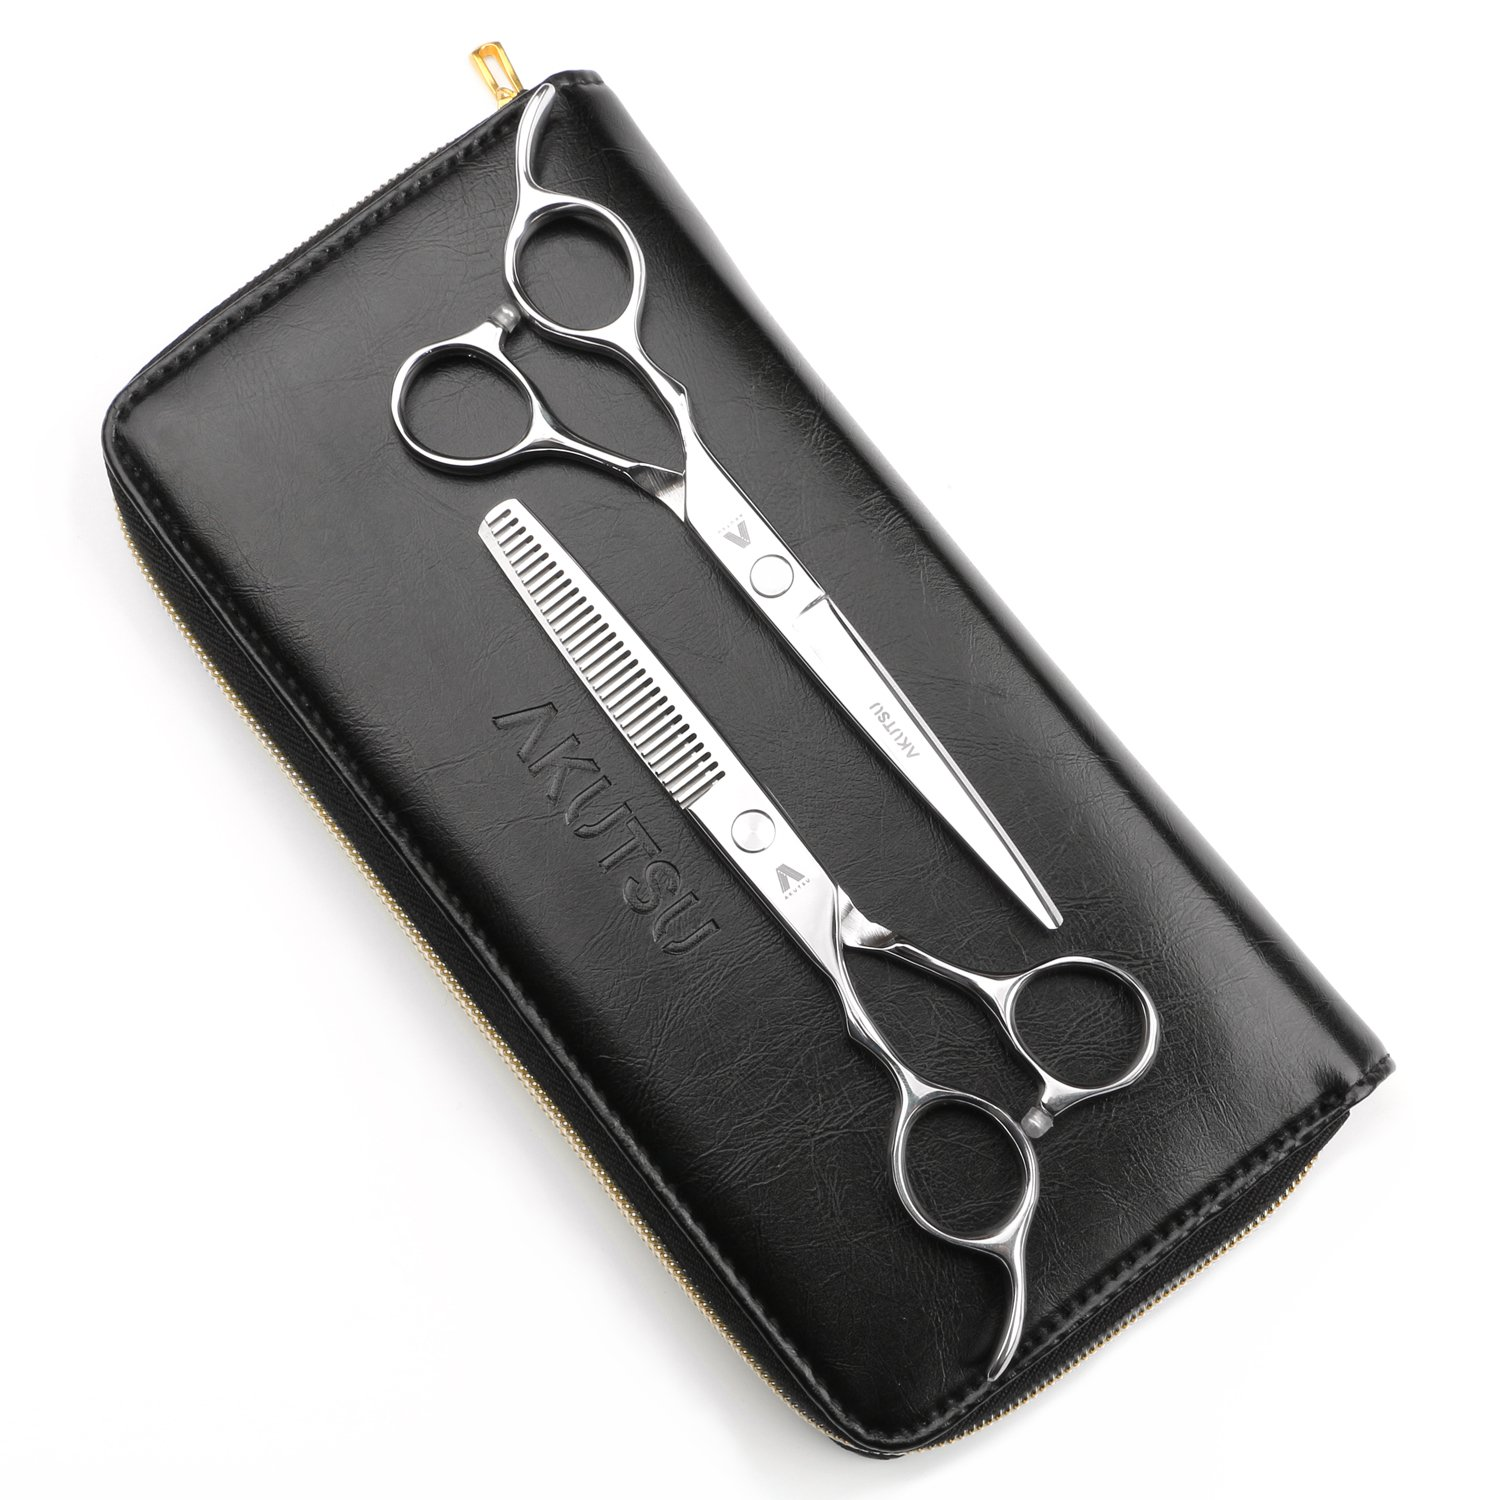 AKUTSU Salon Barber Stainless Steel 6'' Left Handed Hair Cutting Thinning / Texturizing Scissors / Shears Set